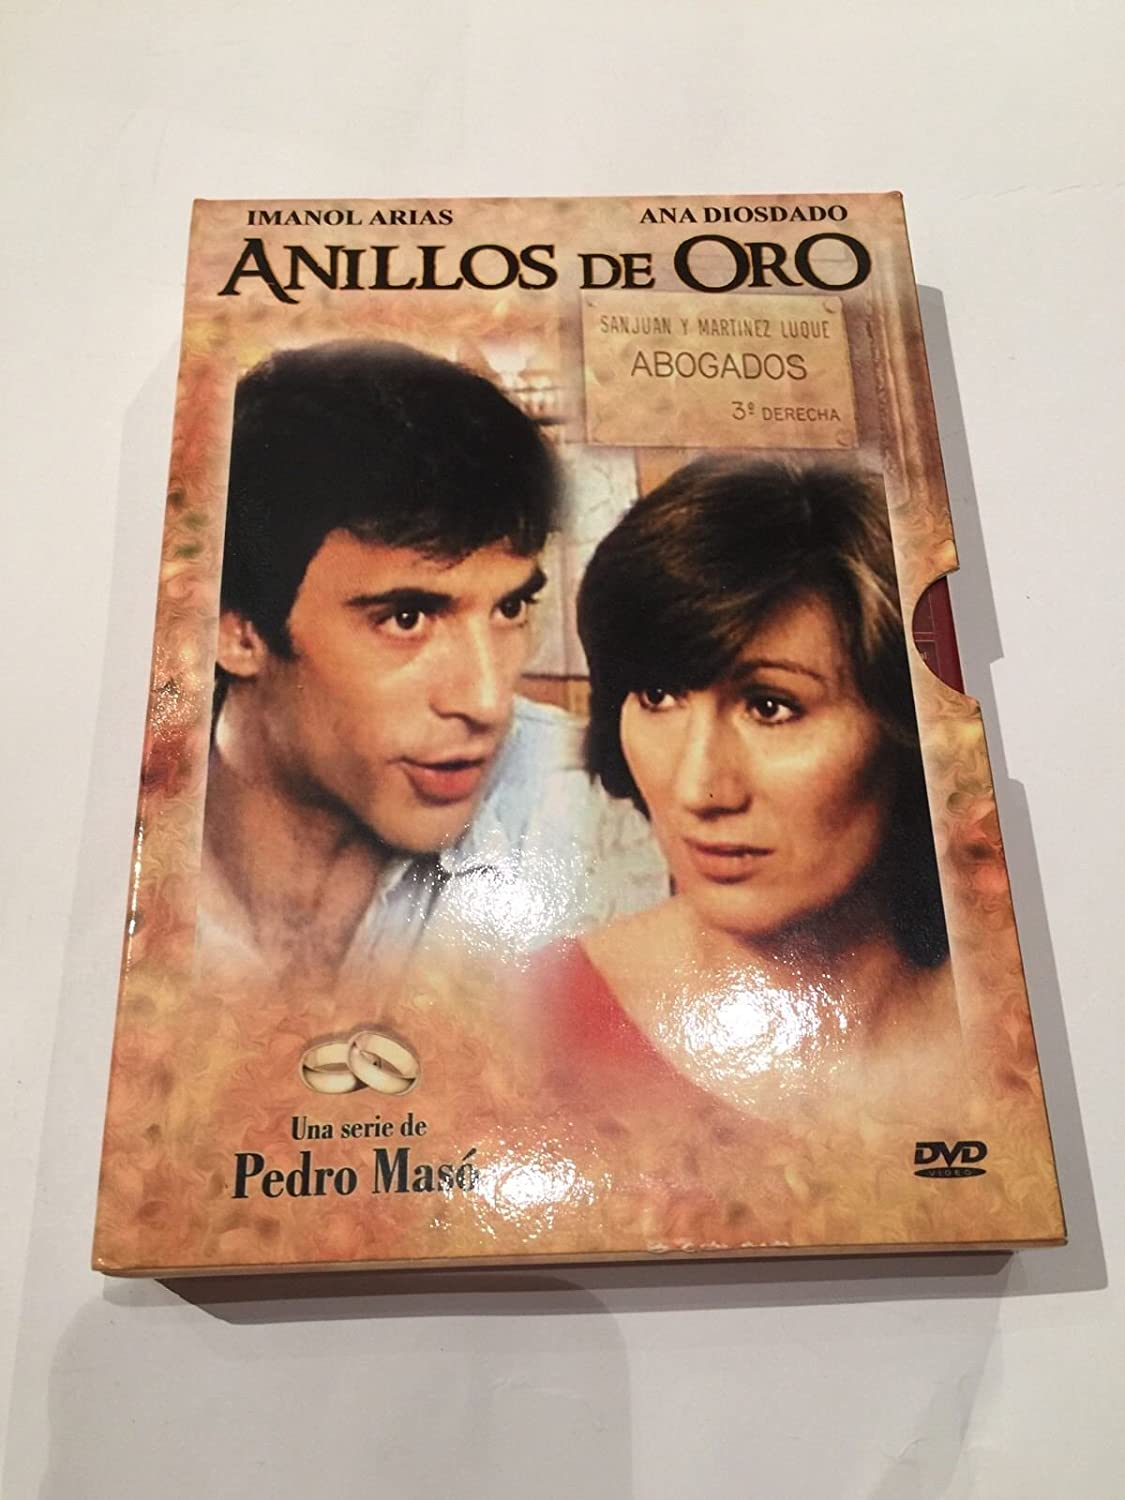 Pack Anillos de oro [DVD]: Amazon.es: Varios: Cine y Series TV